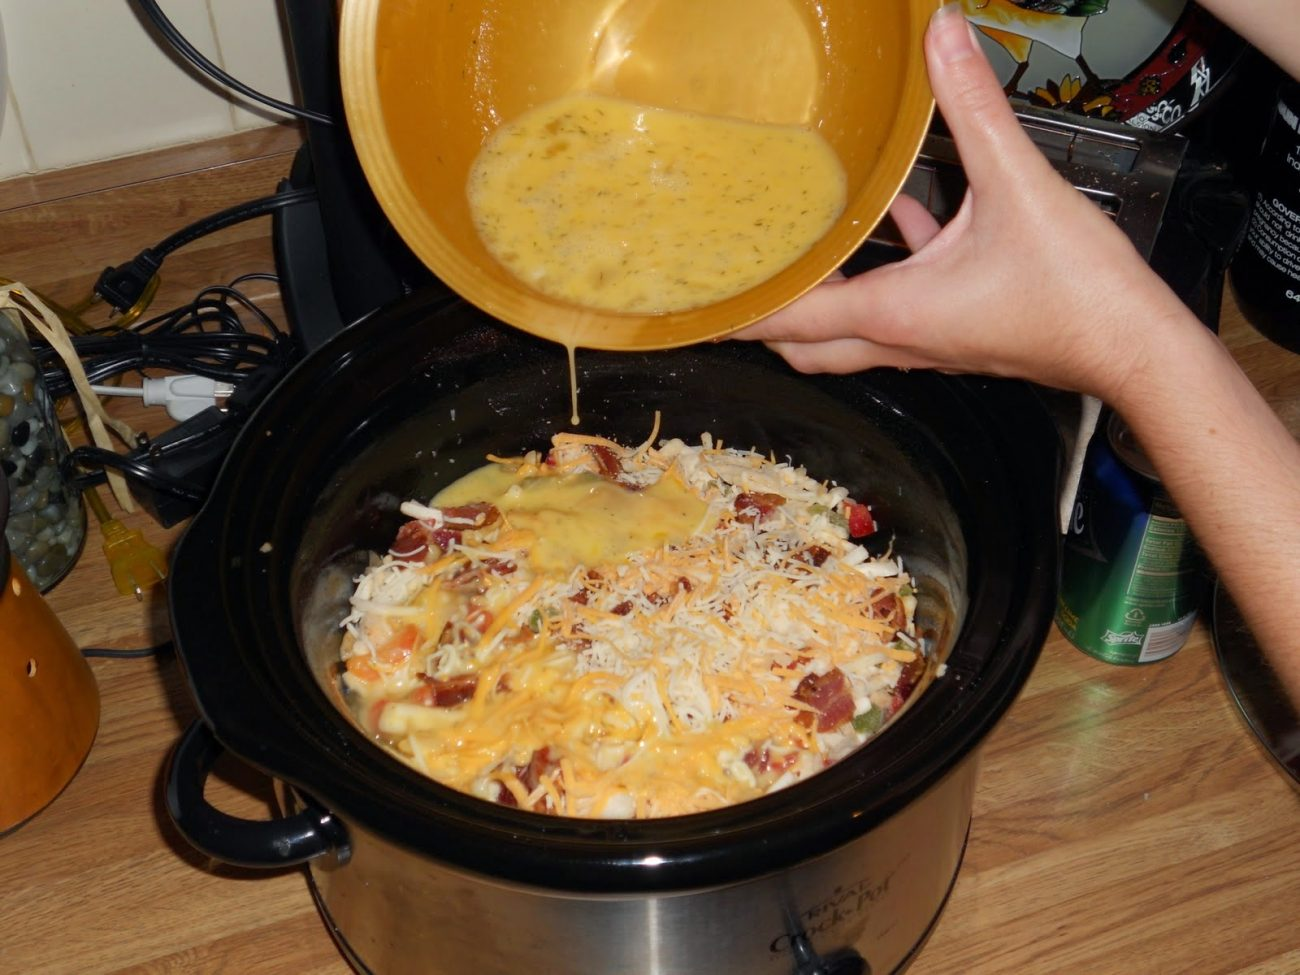 Breakfast Casserole in the Crockpot